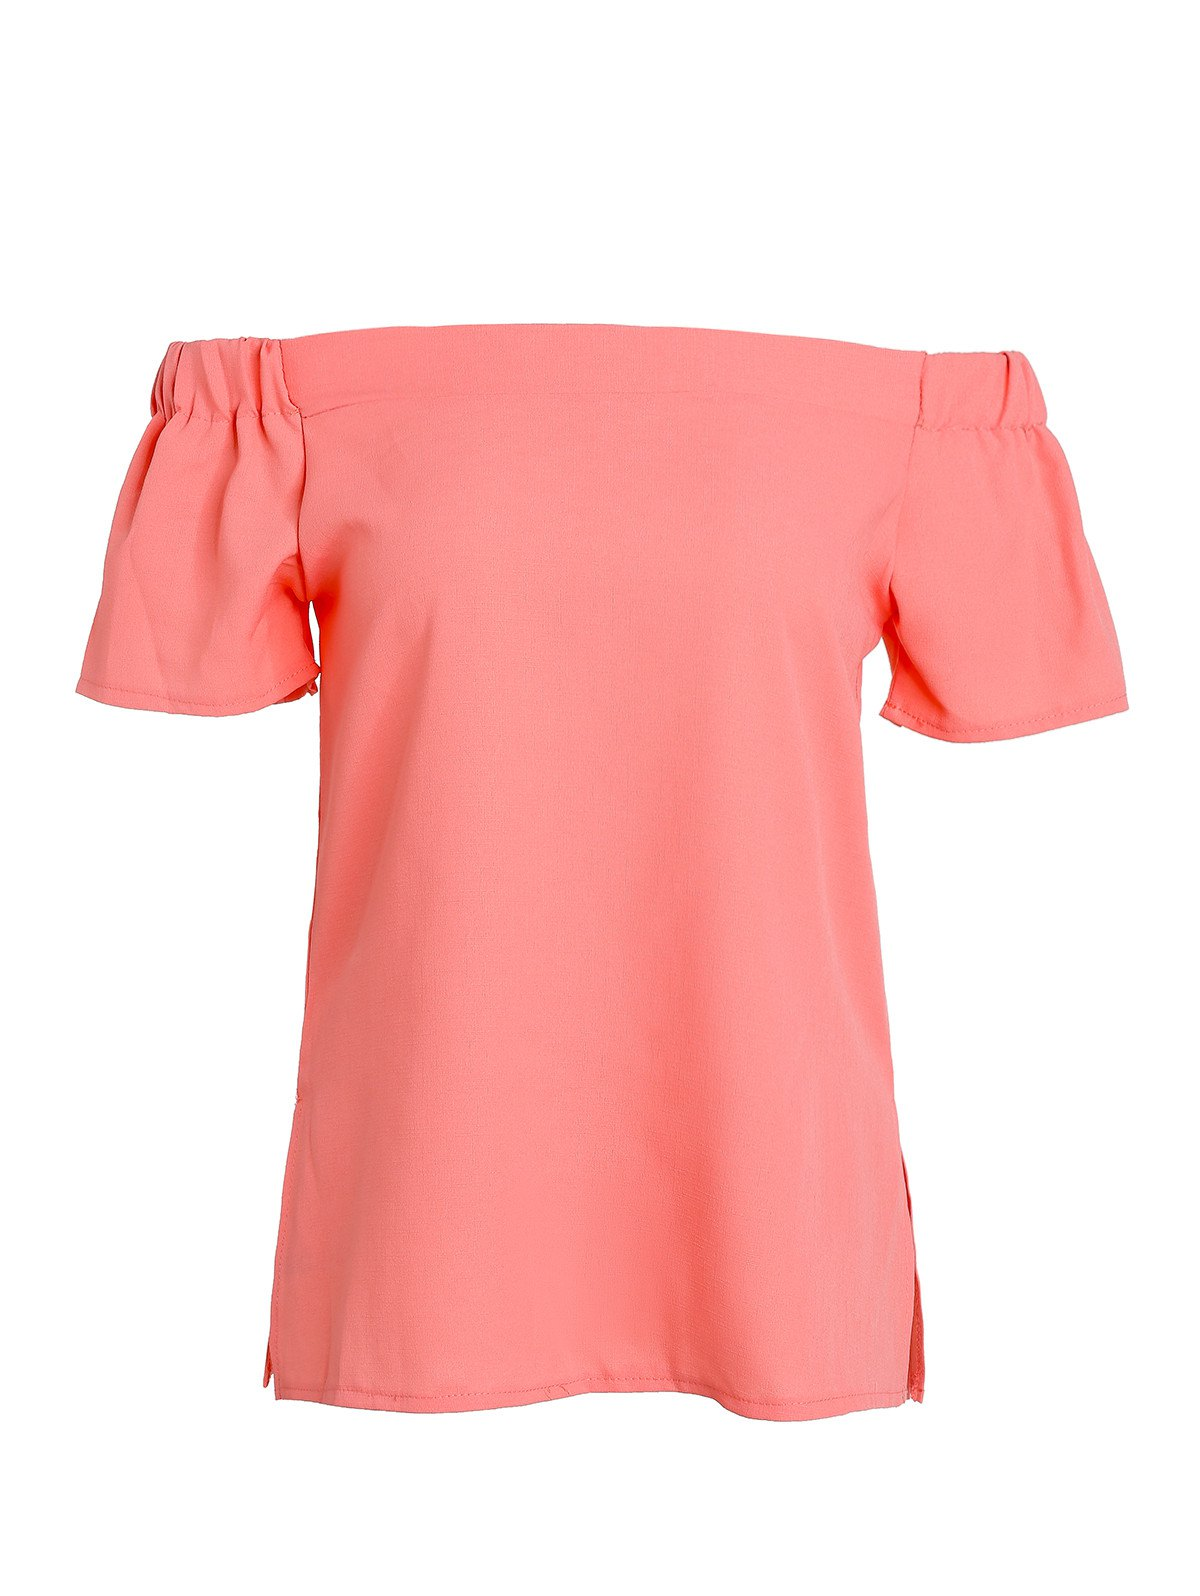 Fashionable Off The Shoulder Short Sleeve Solid Color Blouse For Women - ORANGE L